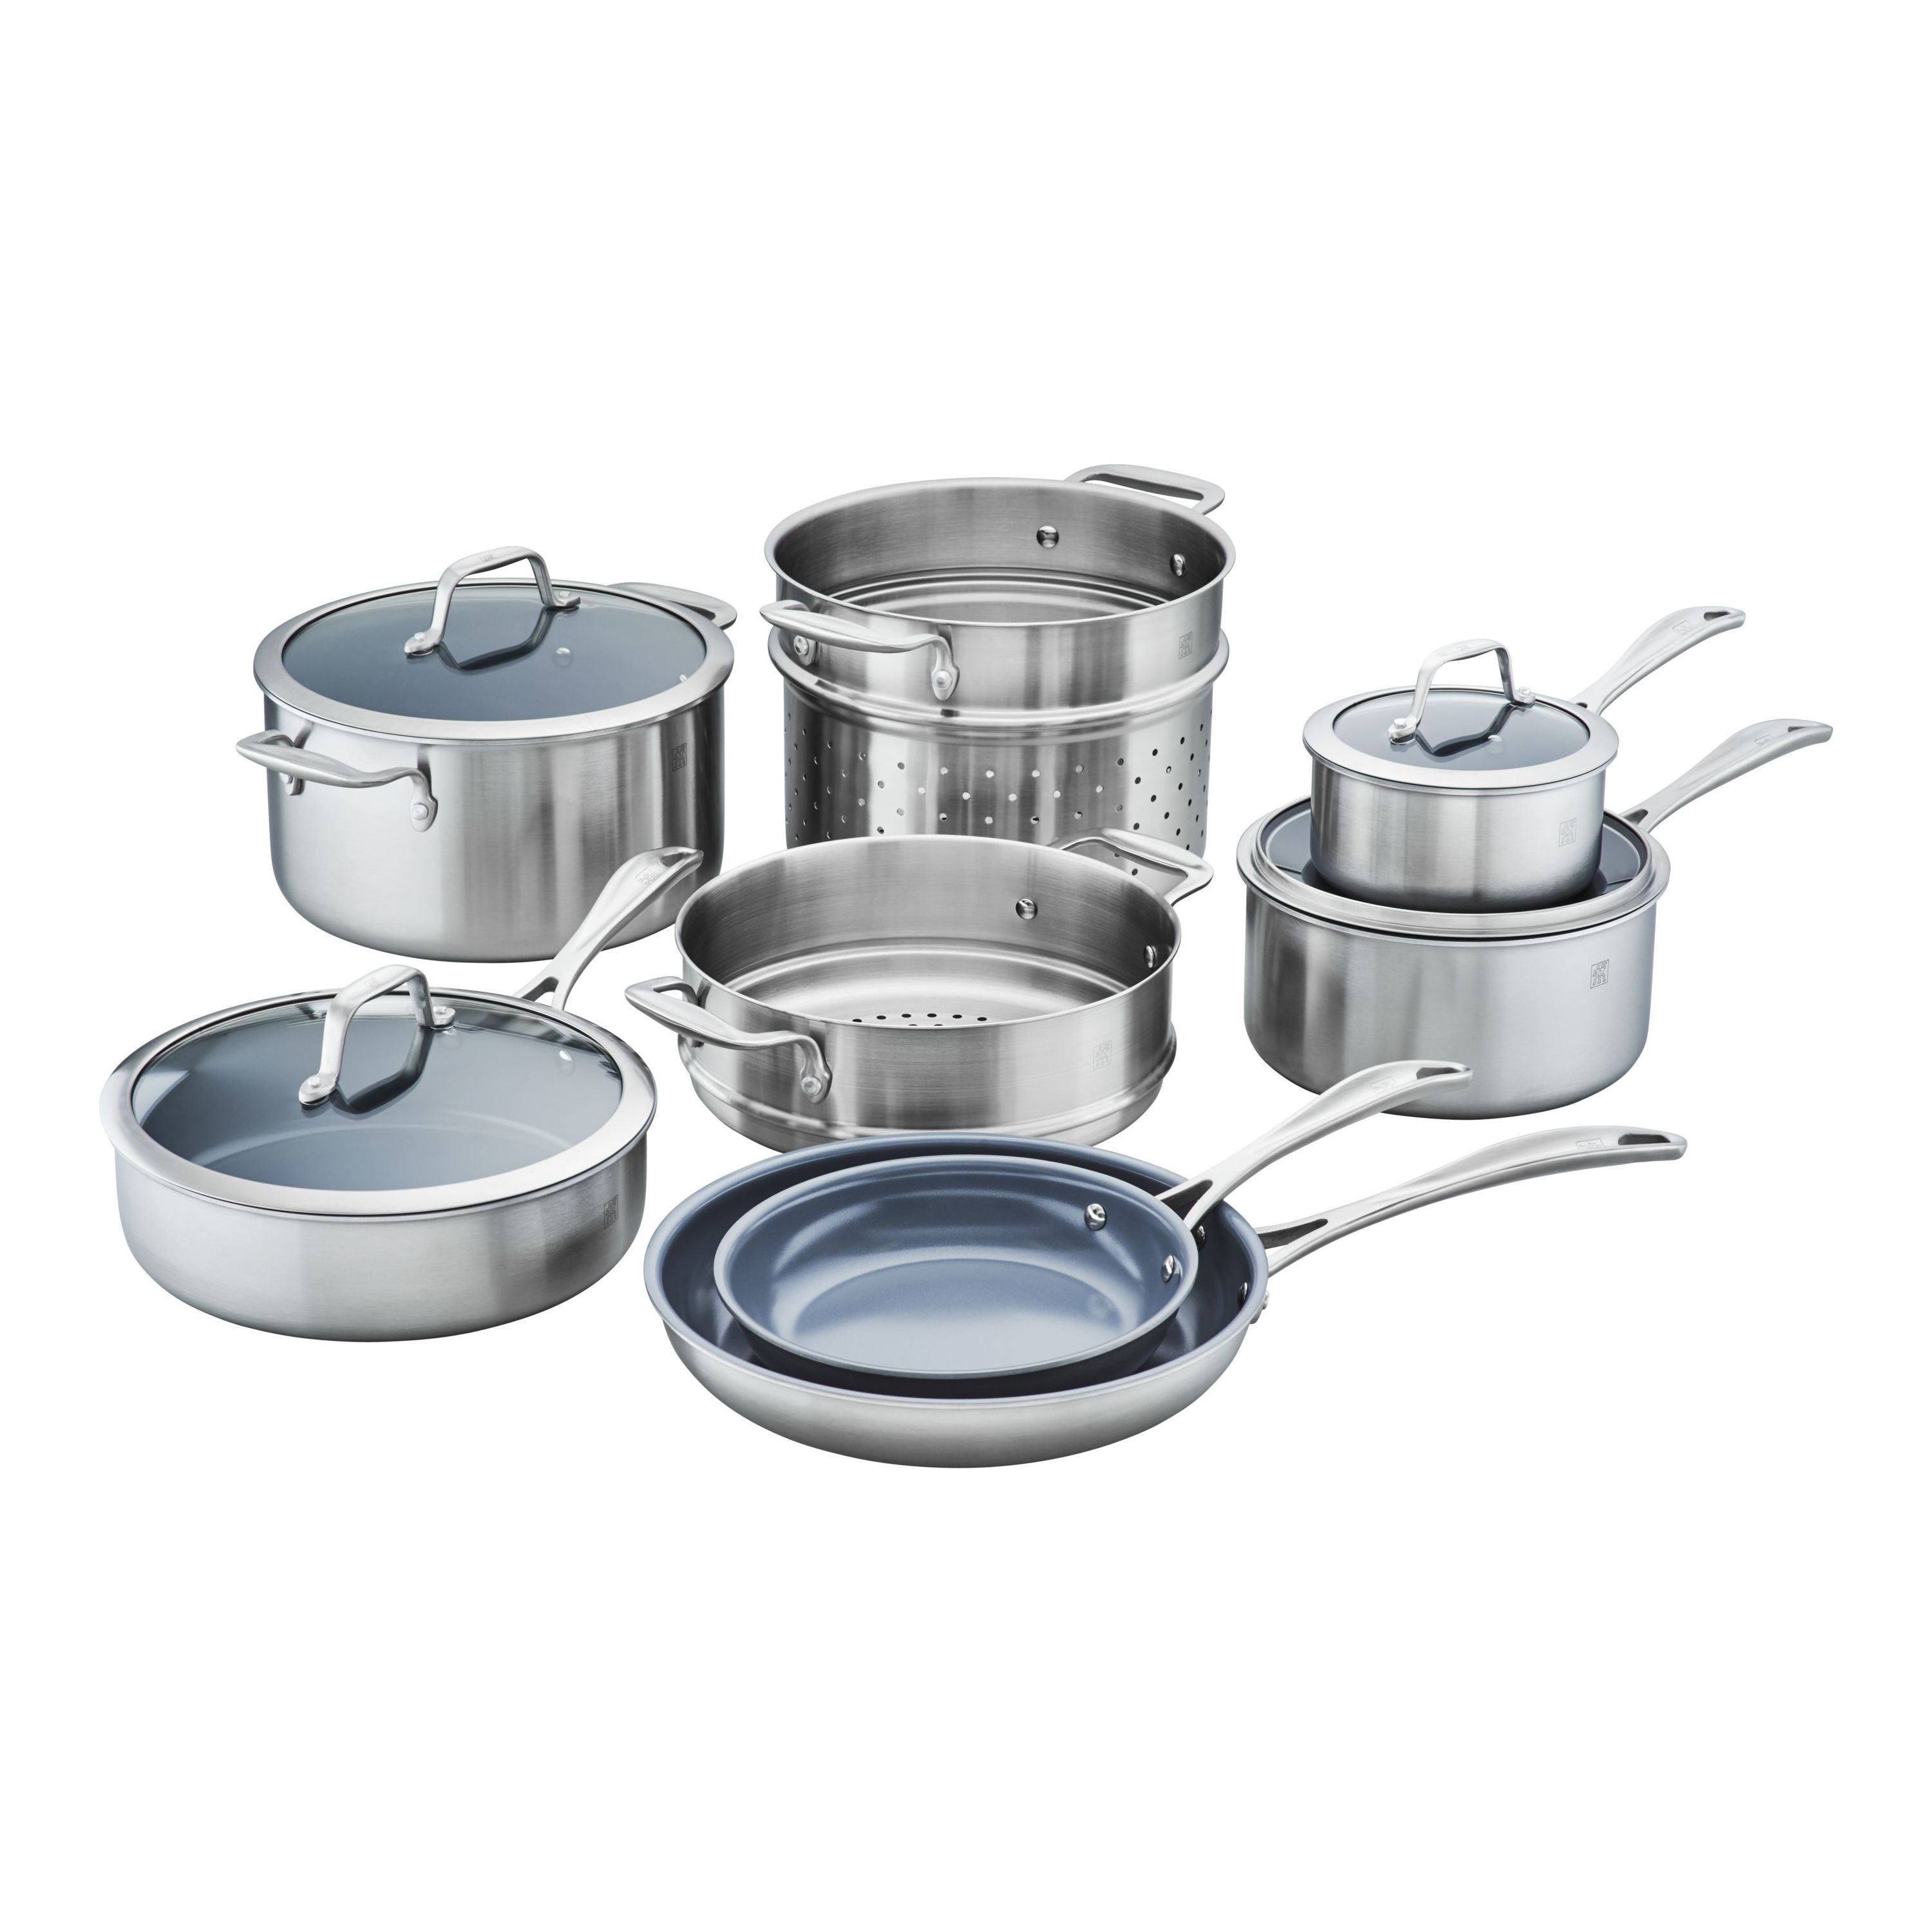 12pc INDUCTION PAN SET GLASS LIDS NONSTICK STAINLESS STEEL KITCHEN COOKWARE POT